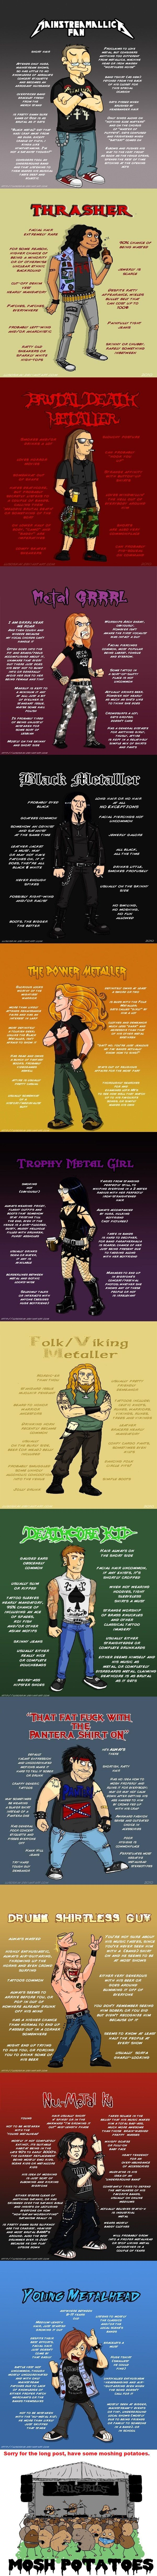 I love Rock and Metal, and I find this hilarious. Guide to different Metalhead stereotypes.